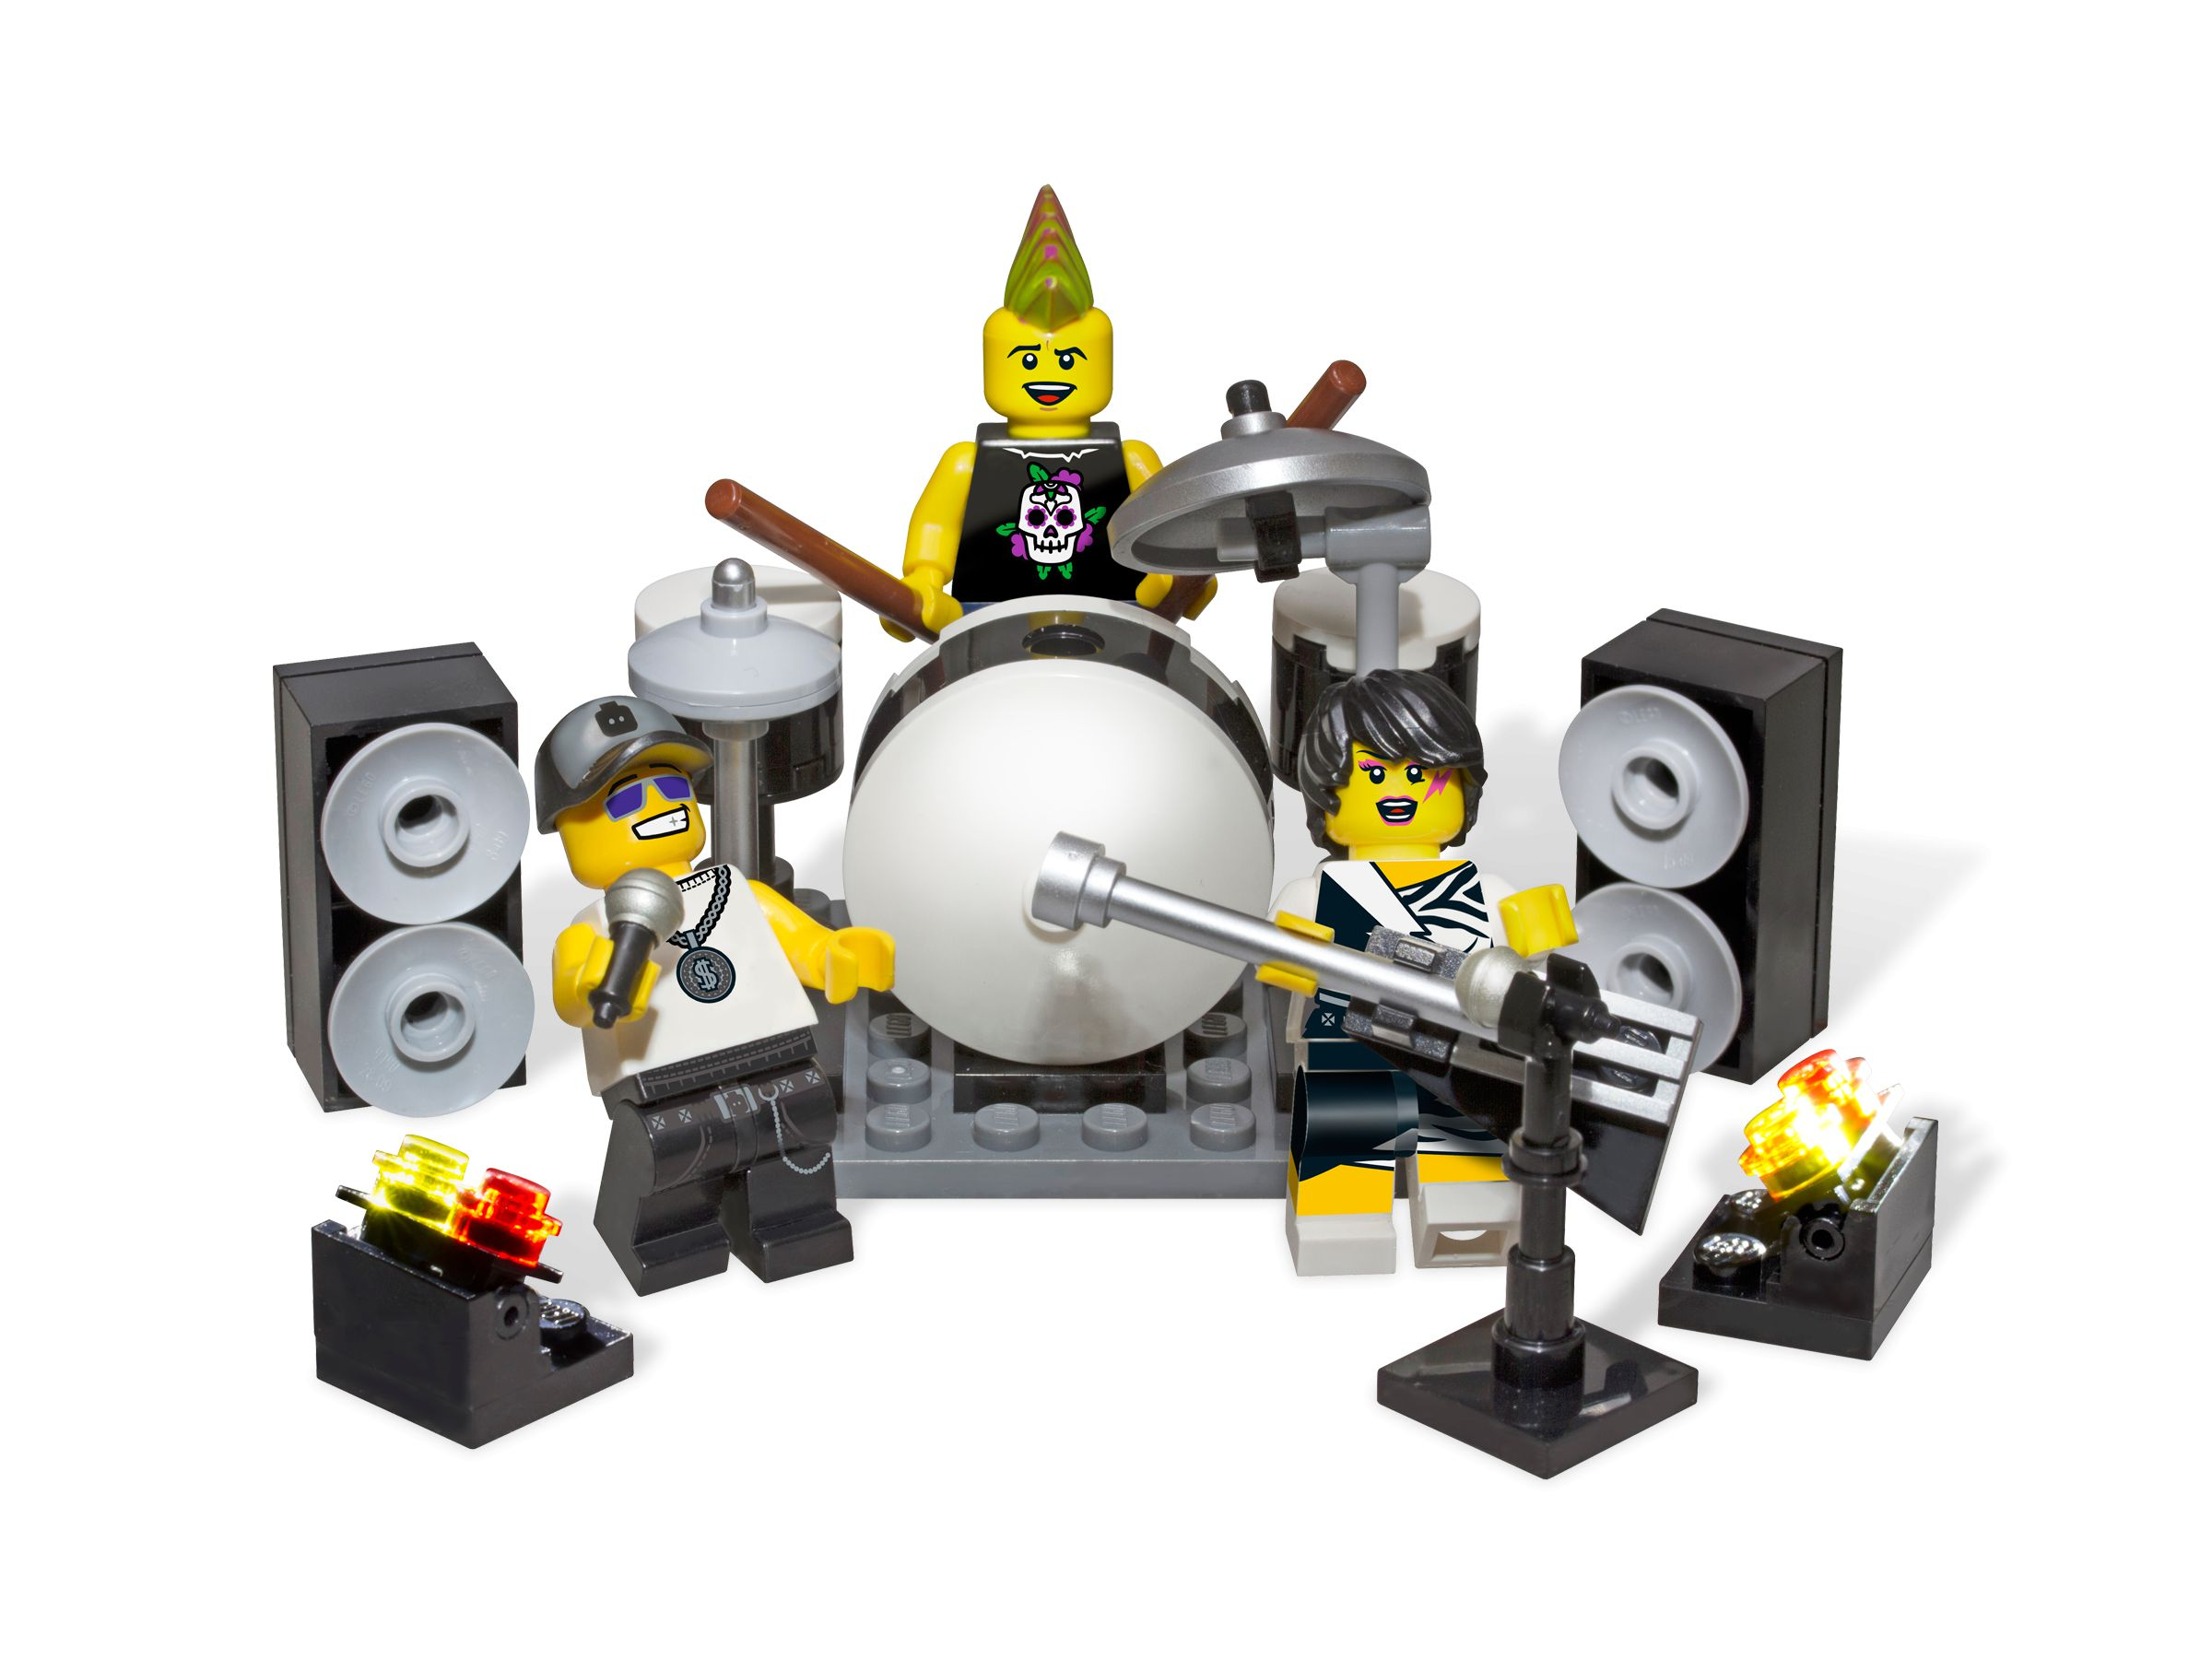 LEGO Collectable Minifigures 850486 Rock Band Minifigure Accessory Set LEGO_850486.jpg